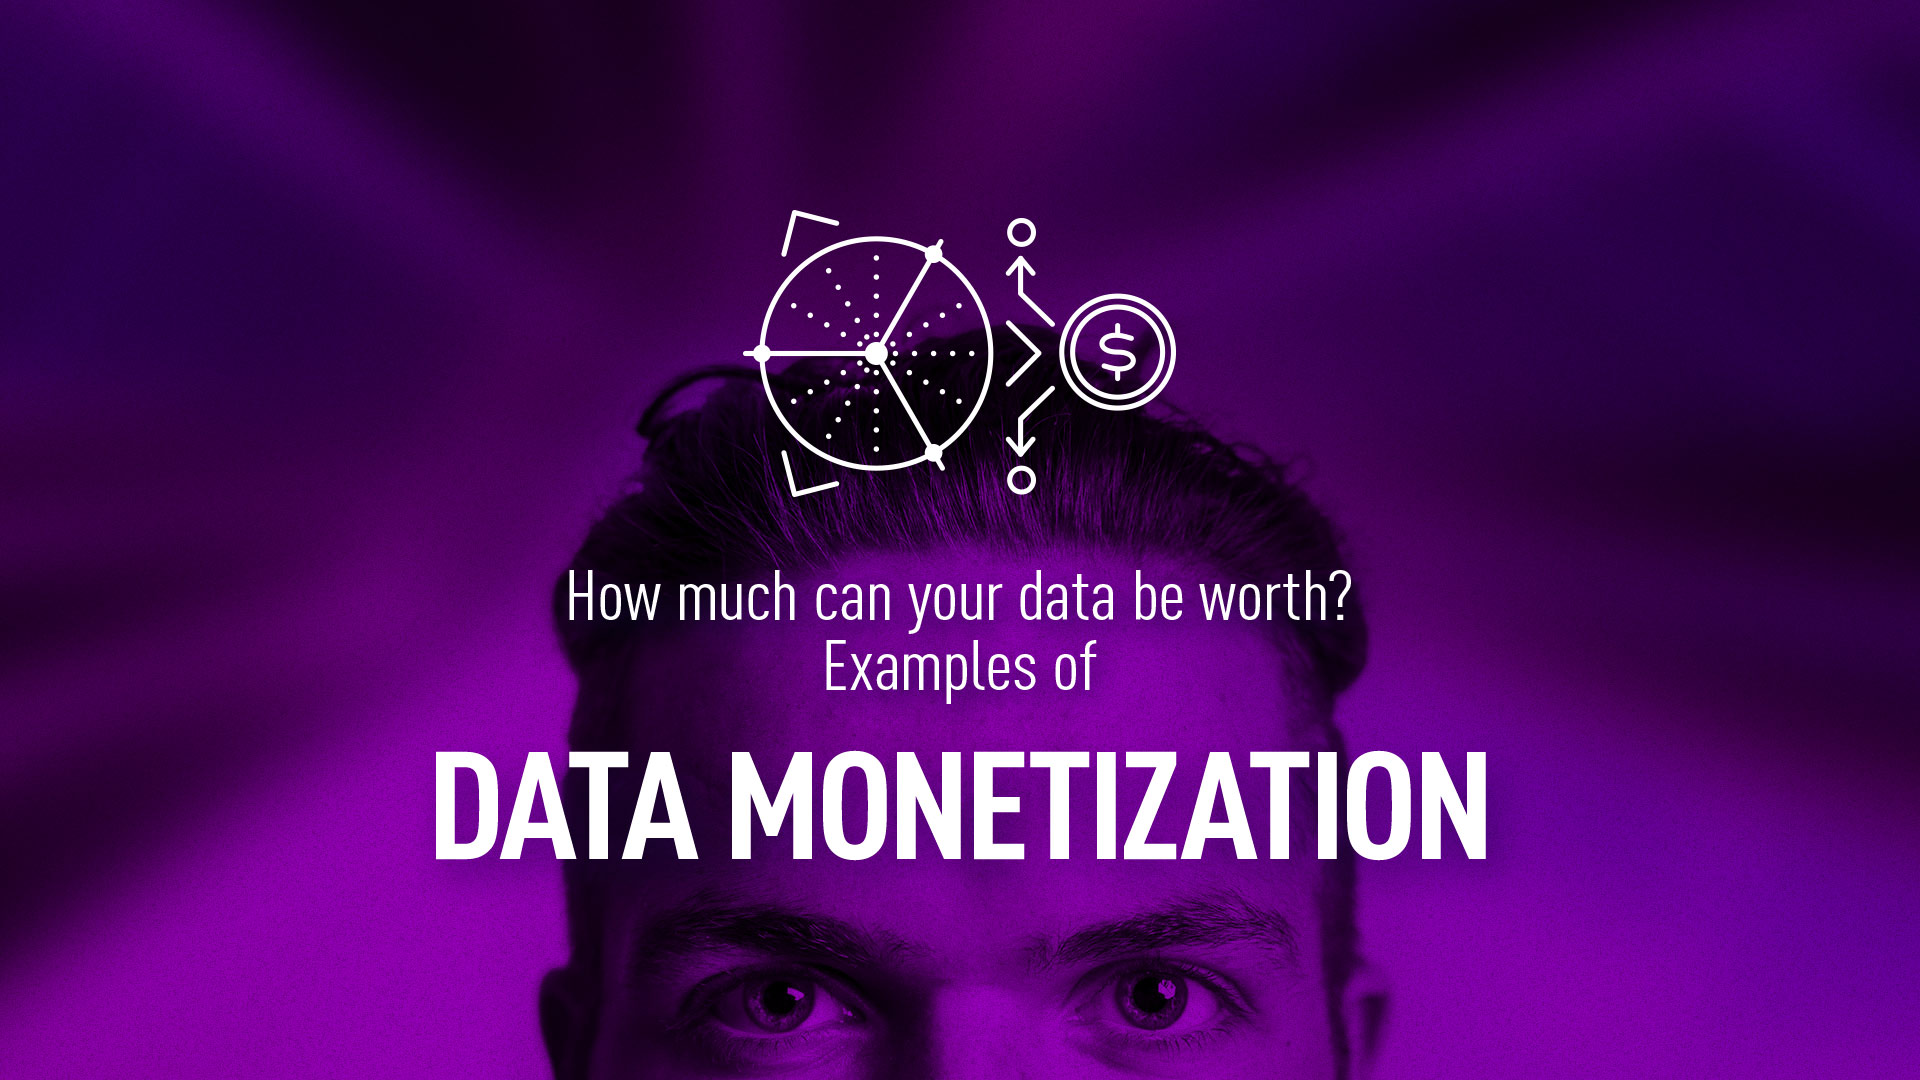 Data monetization examples - check what is your data value